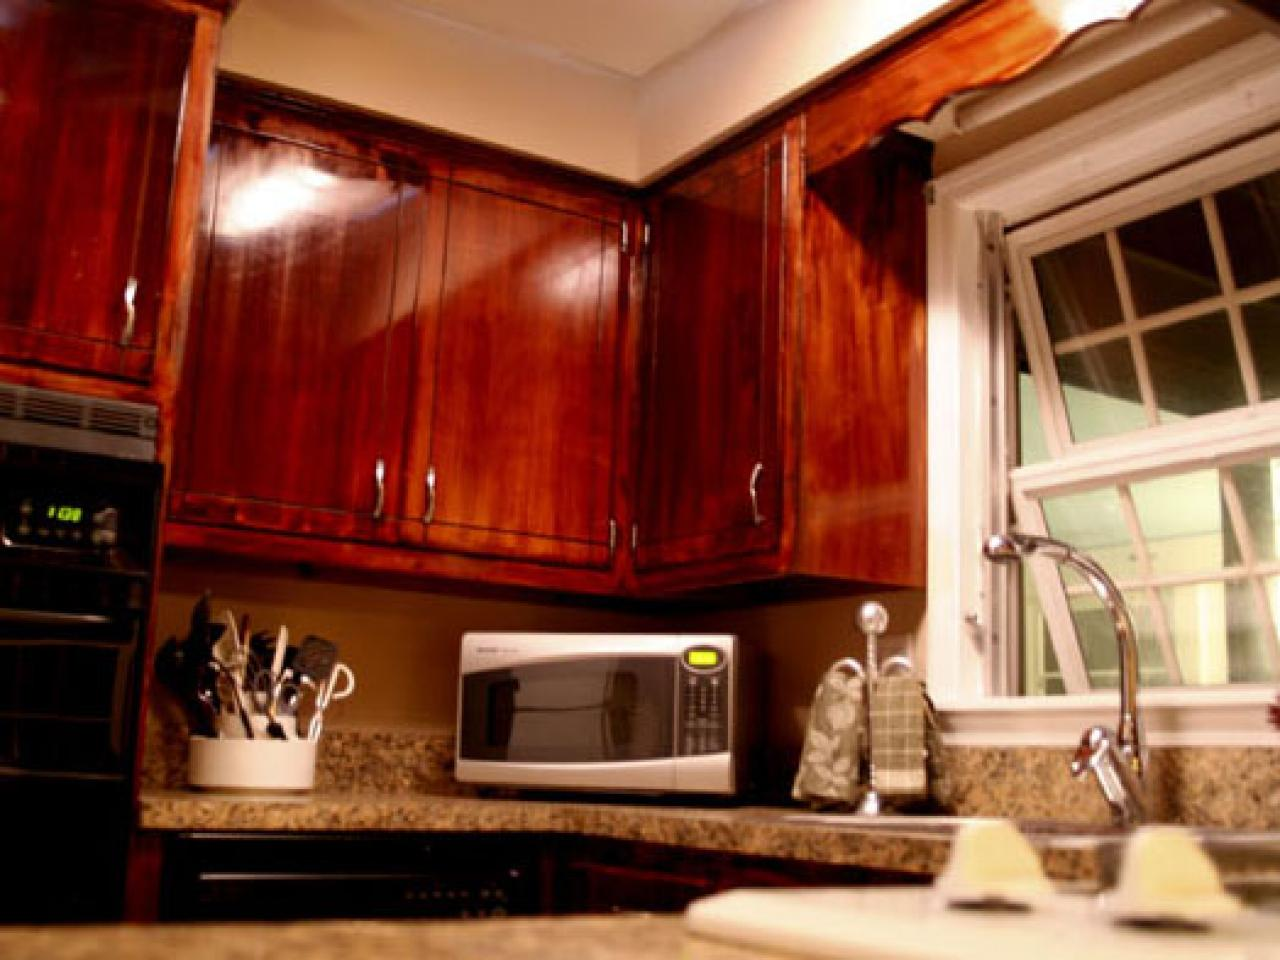 how to give your kitchen cabinets a makeover  hgtv - related to kitchen cabinets cabinets how to kitchens painting andfinishing staining hdswtcbafterkitchencabinets